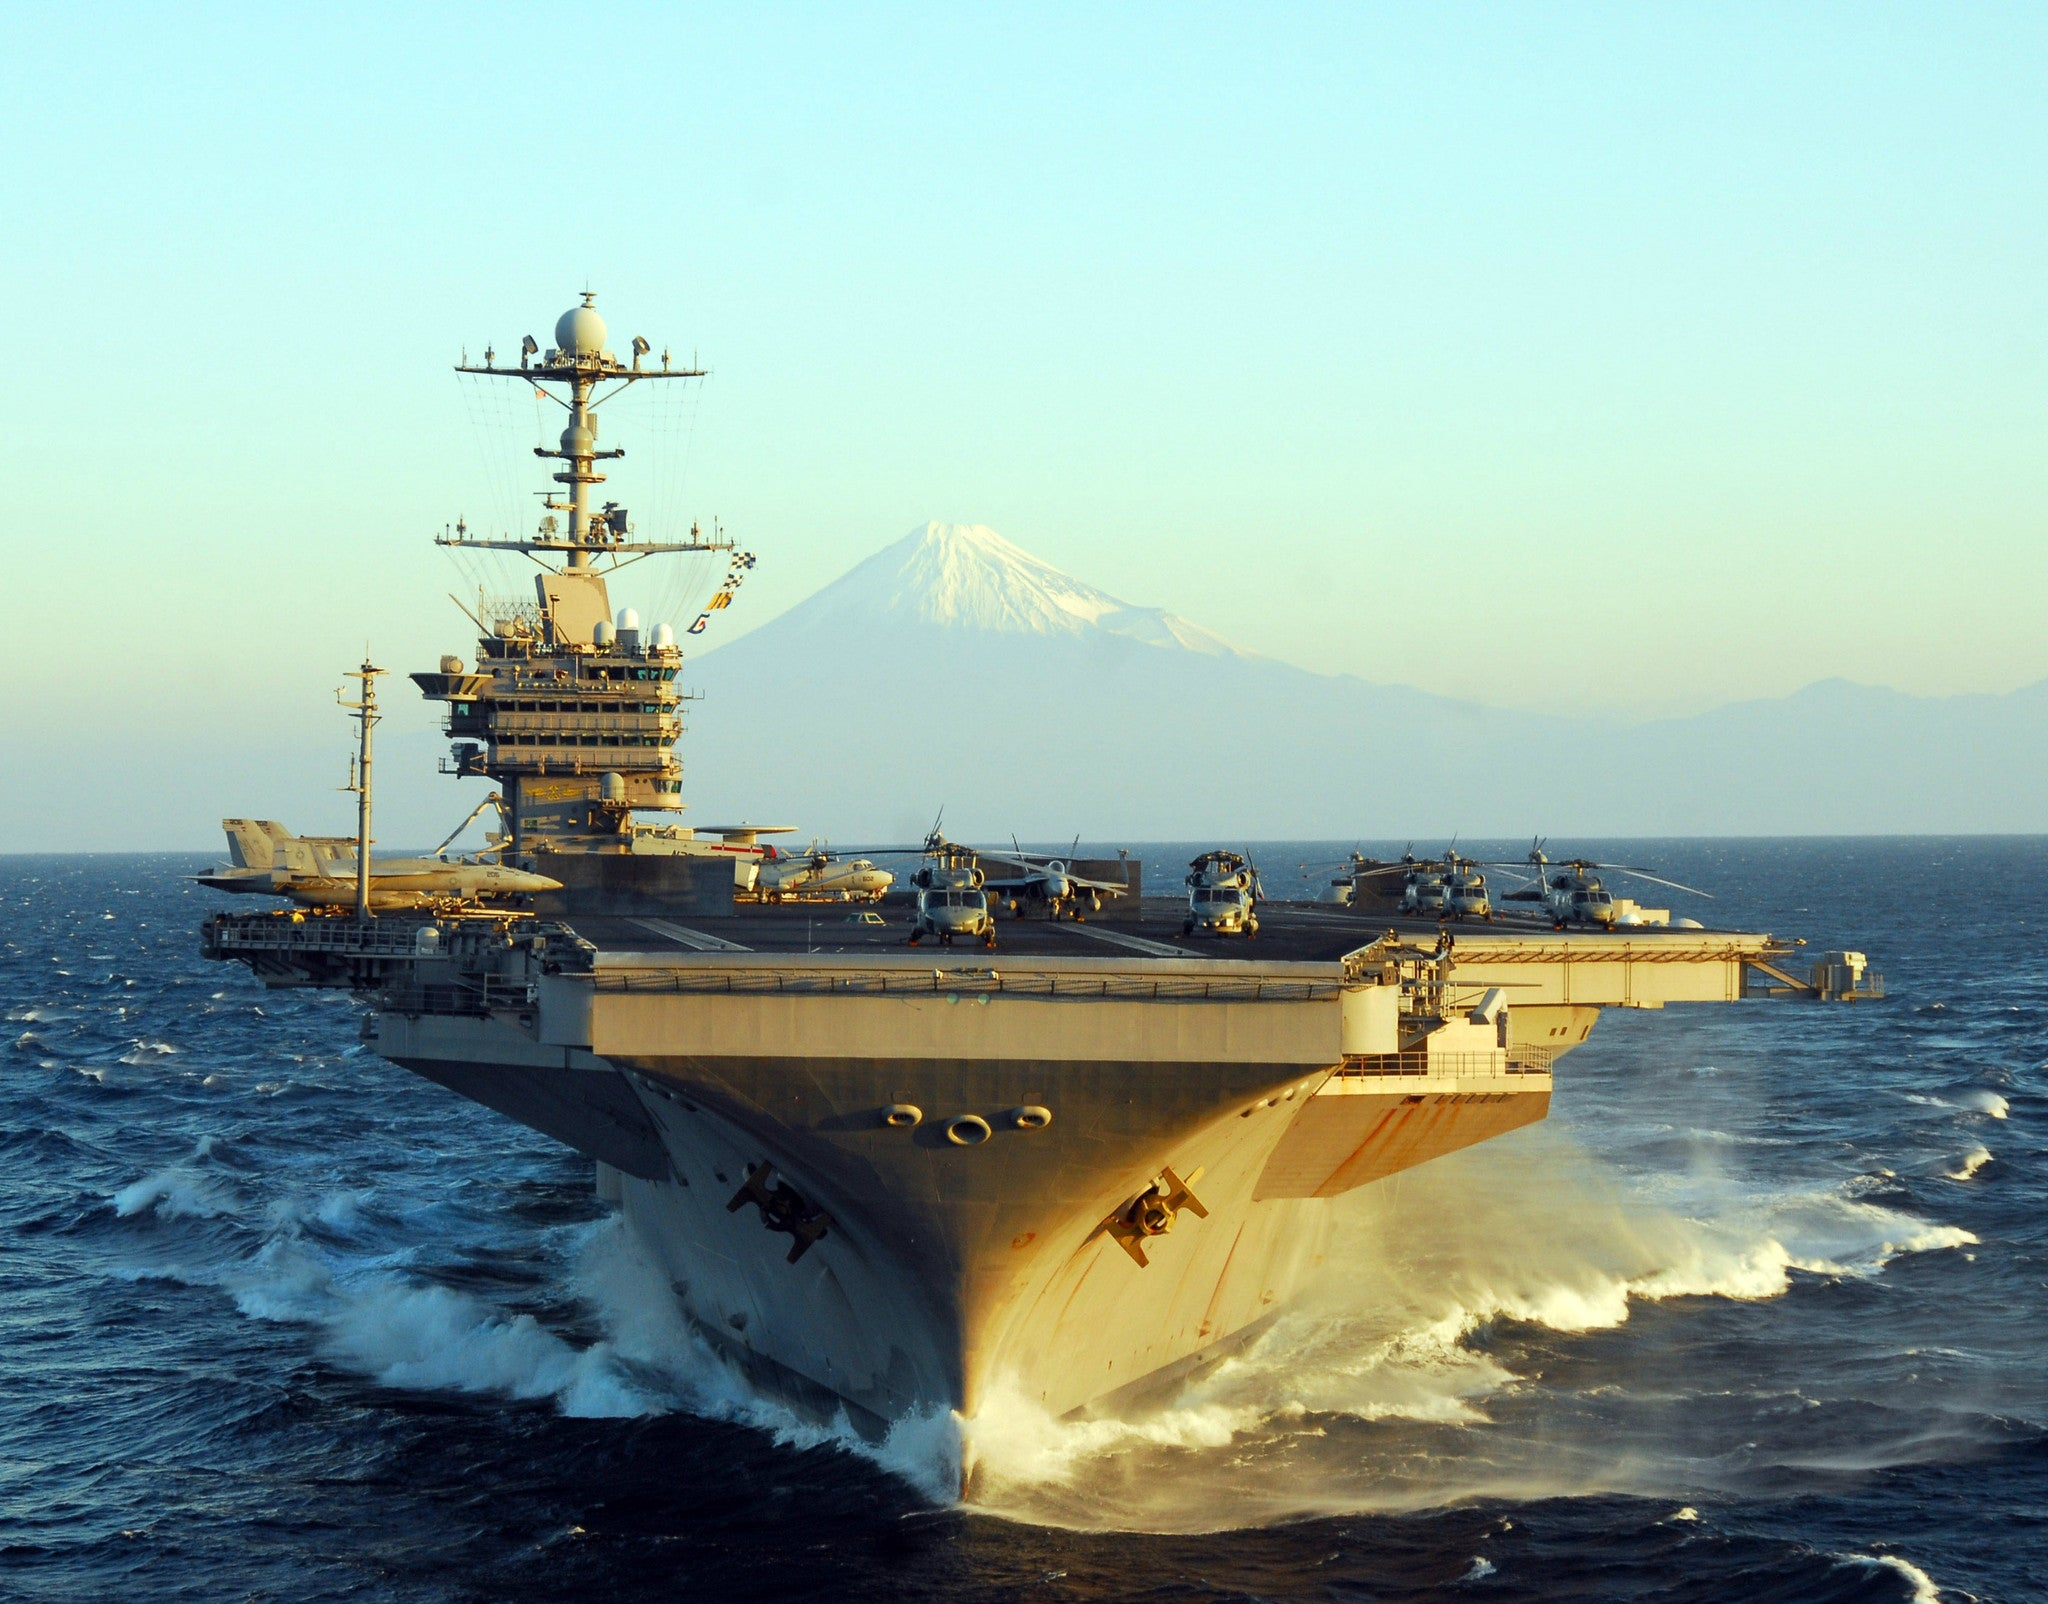 "USS George Washington CVN-73 off Mount Fuji, Japan November 21, 2009 - 8 x 10"" Photograph"